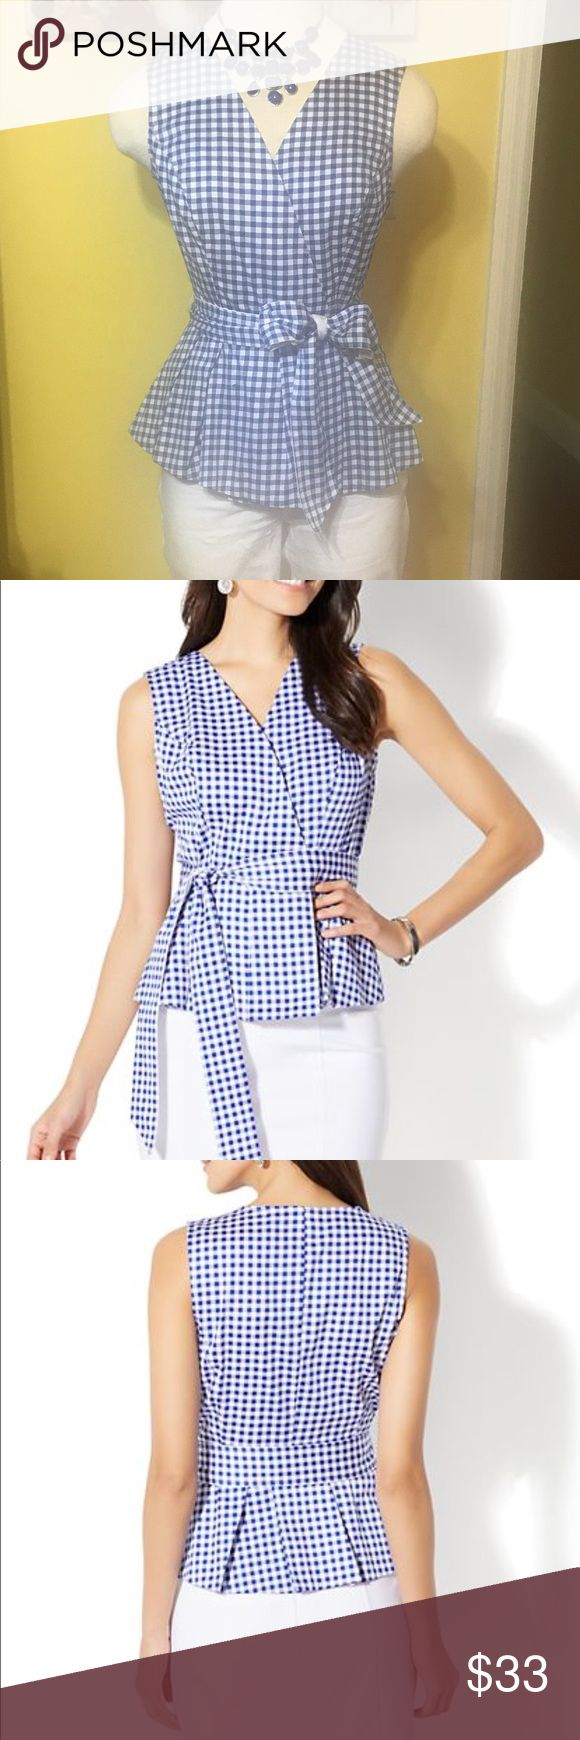 """7th Ave Design Studio sleeveless peplum shirt NWT 7th Ave Design Studio by New York &Company, Blue & White Gingham sleeveless peplum wrap shirt finished with a waist defining self tie belt. Features: wrap front with hidden snap closure, princess seams on front and back, peplum waist with pleating below and self tie belt at waist. A sophisticated and chic shirt that can be worn dressy or casual. New With Tag with extra snaps included  Size is XS 26"""" Waist, 32-34"""" bust, 22.5""""L hits at hip New…"""